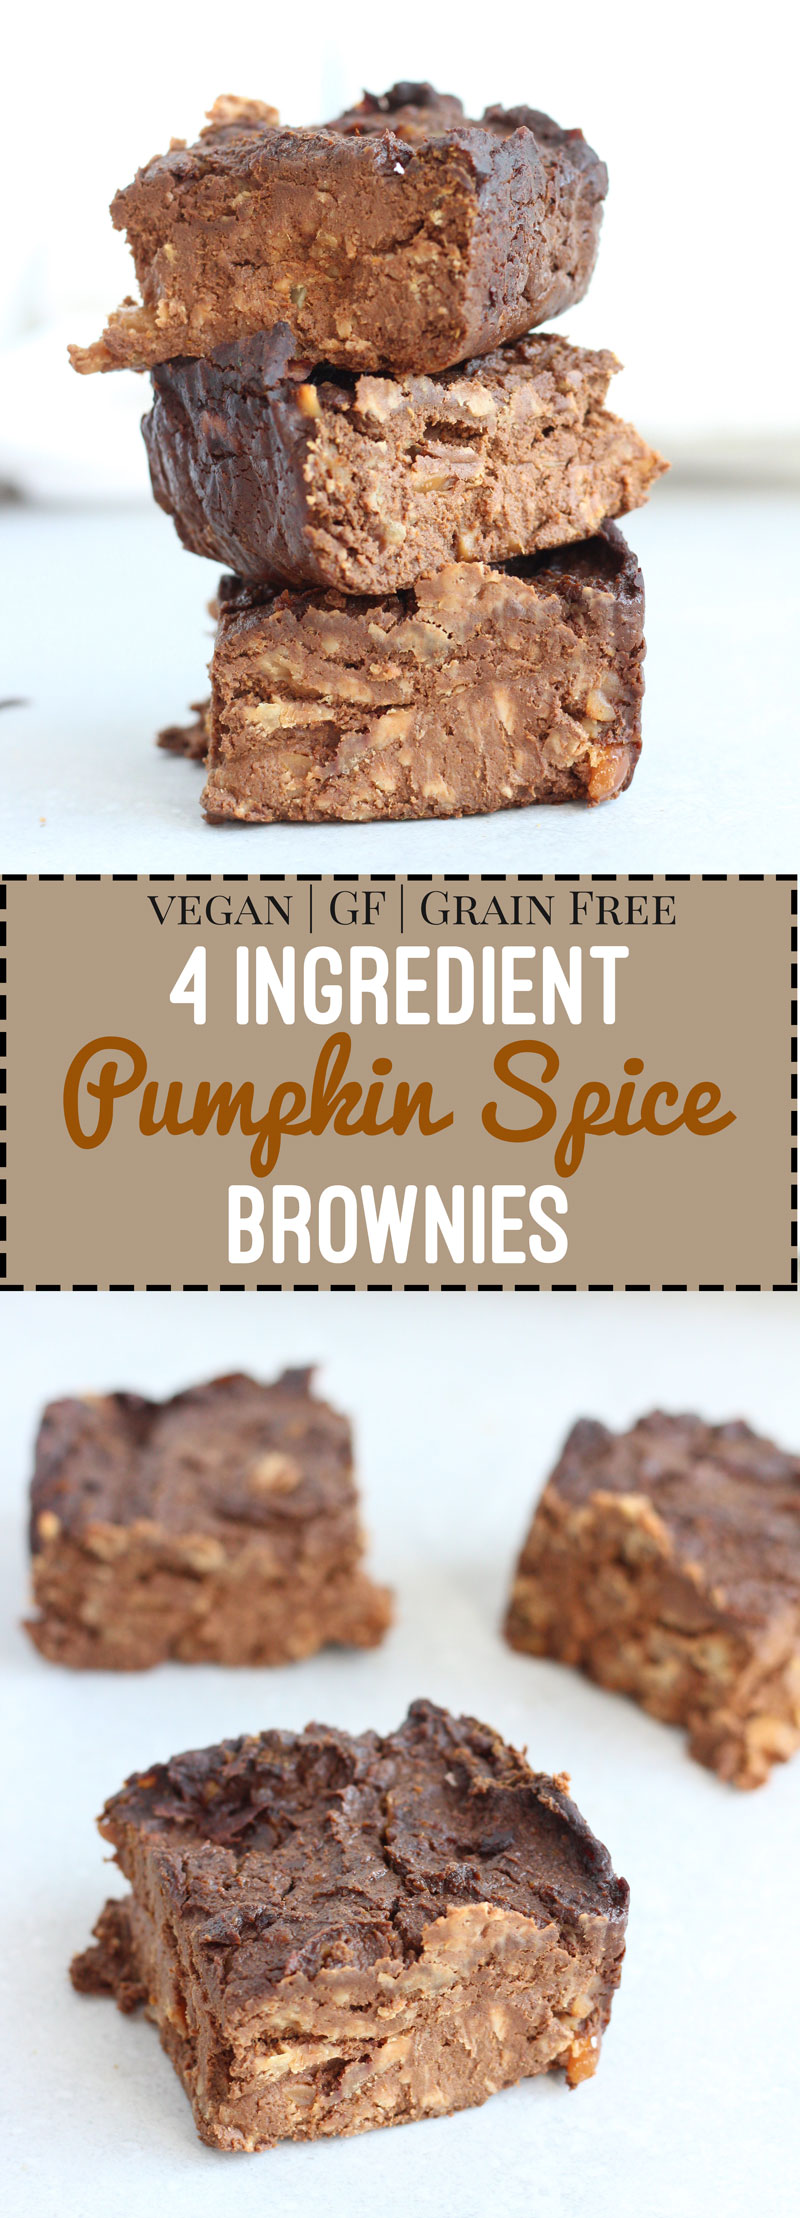 pumpkin spice, brownies, recipe, 4 ingredients, low carb, healthy, vegan, gluten free, dairy free, flourless, dessert, chocolate, autumn, fall, halloween - Nikki's Plate www.nikkisplate.com